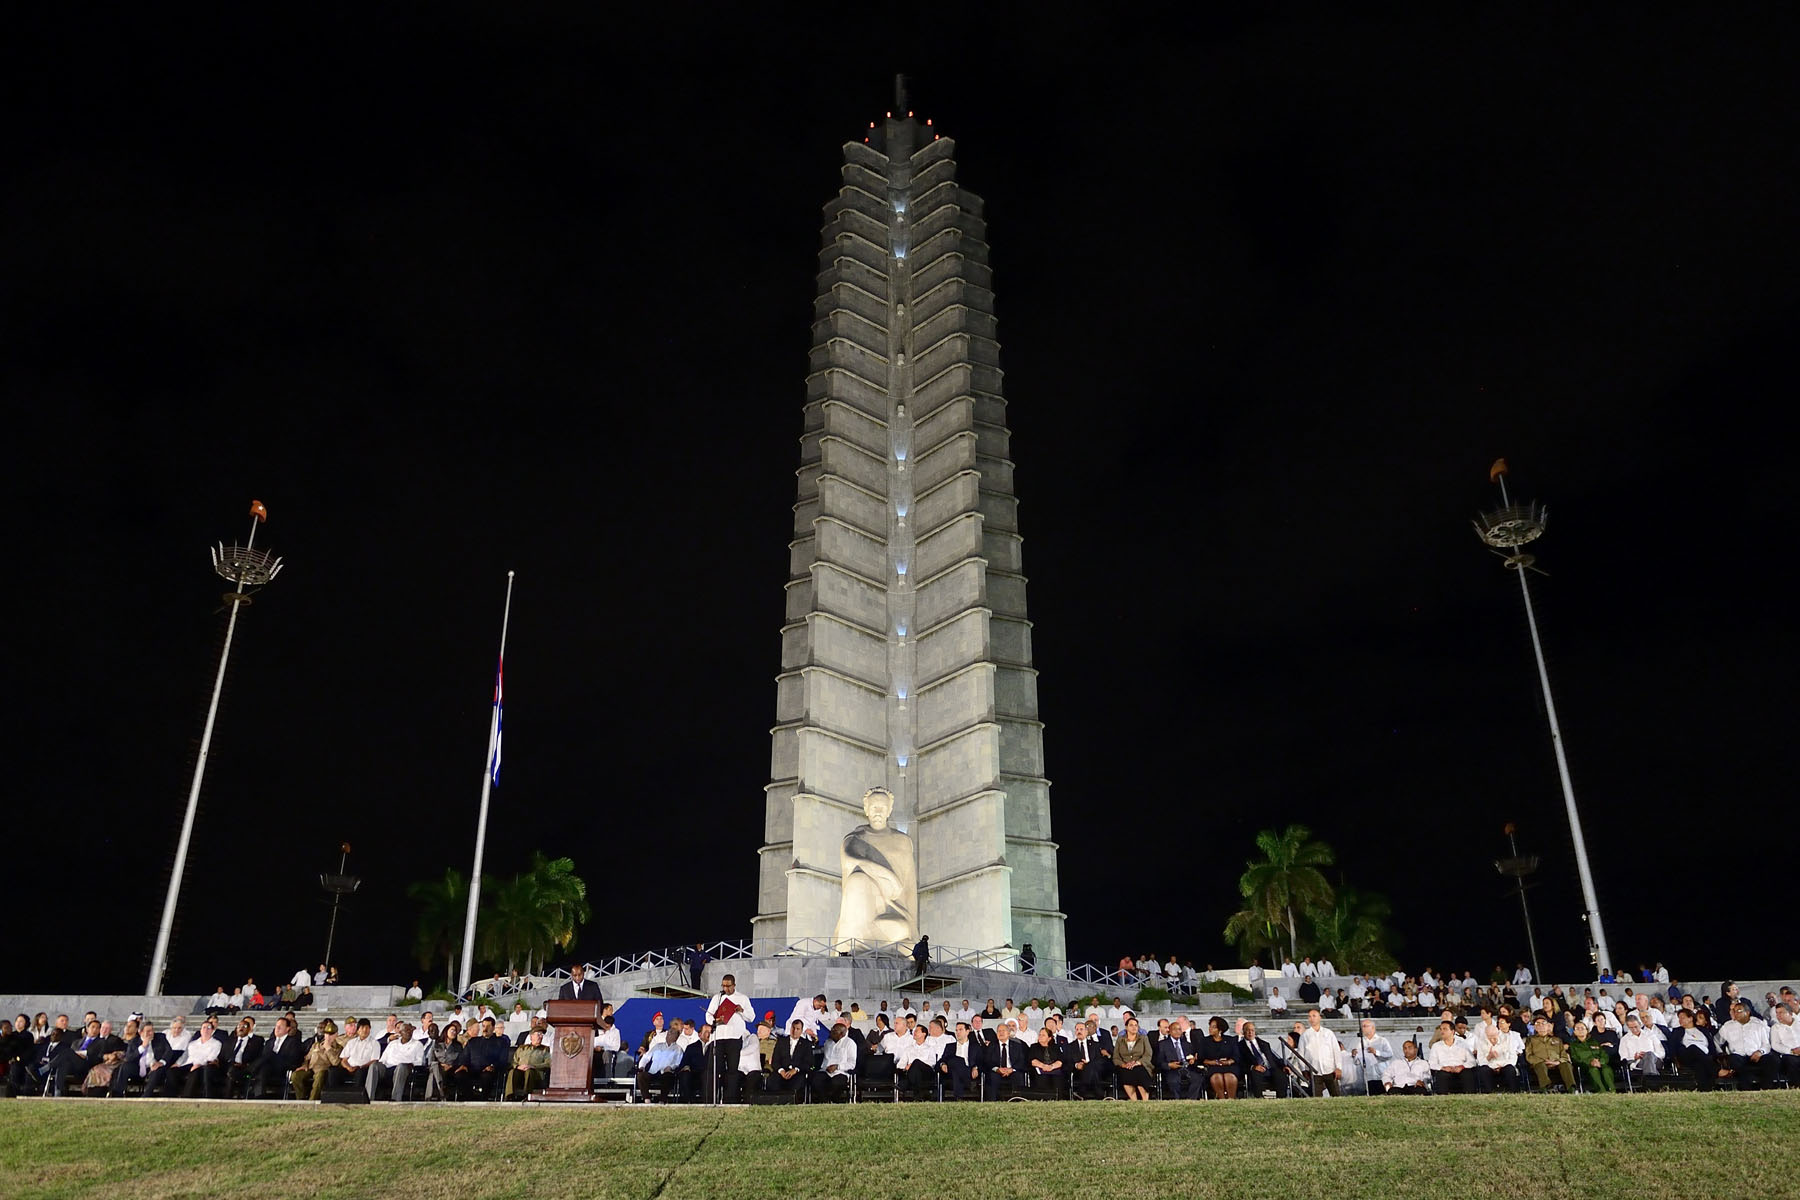 In front of the Plaze de la Revolución, the Jose Marti Memorial dominates the square and features a 109 metres tall tower and large Statue. Jose Marti is an important figure in Latin American literature who dedicated his life to the promotion of liberty and Cuba's political independence from Spain.